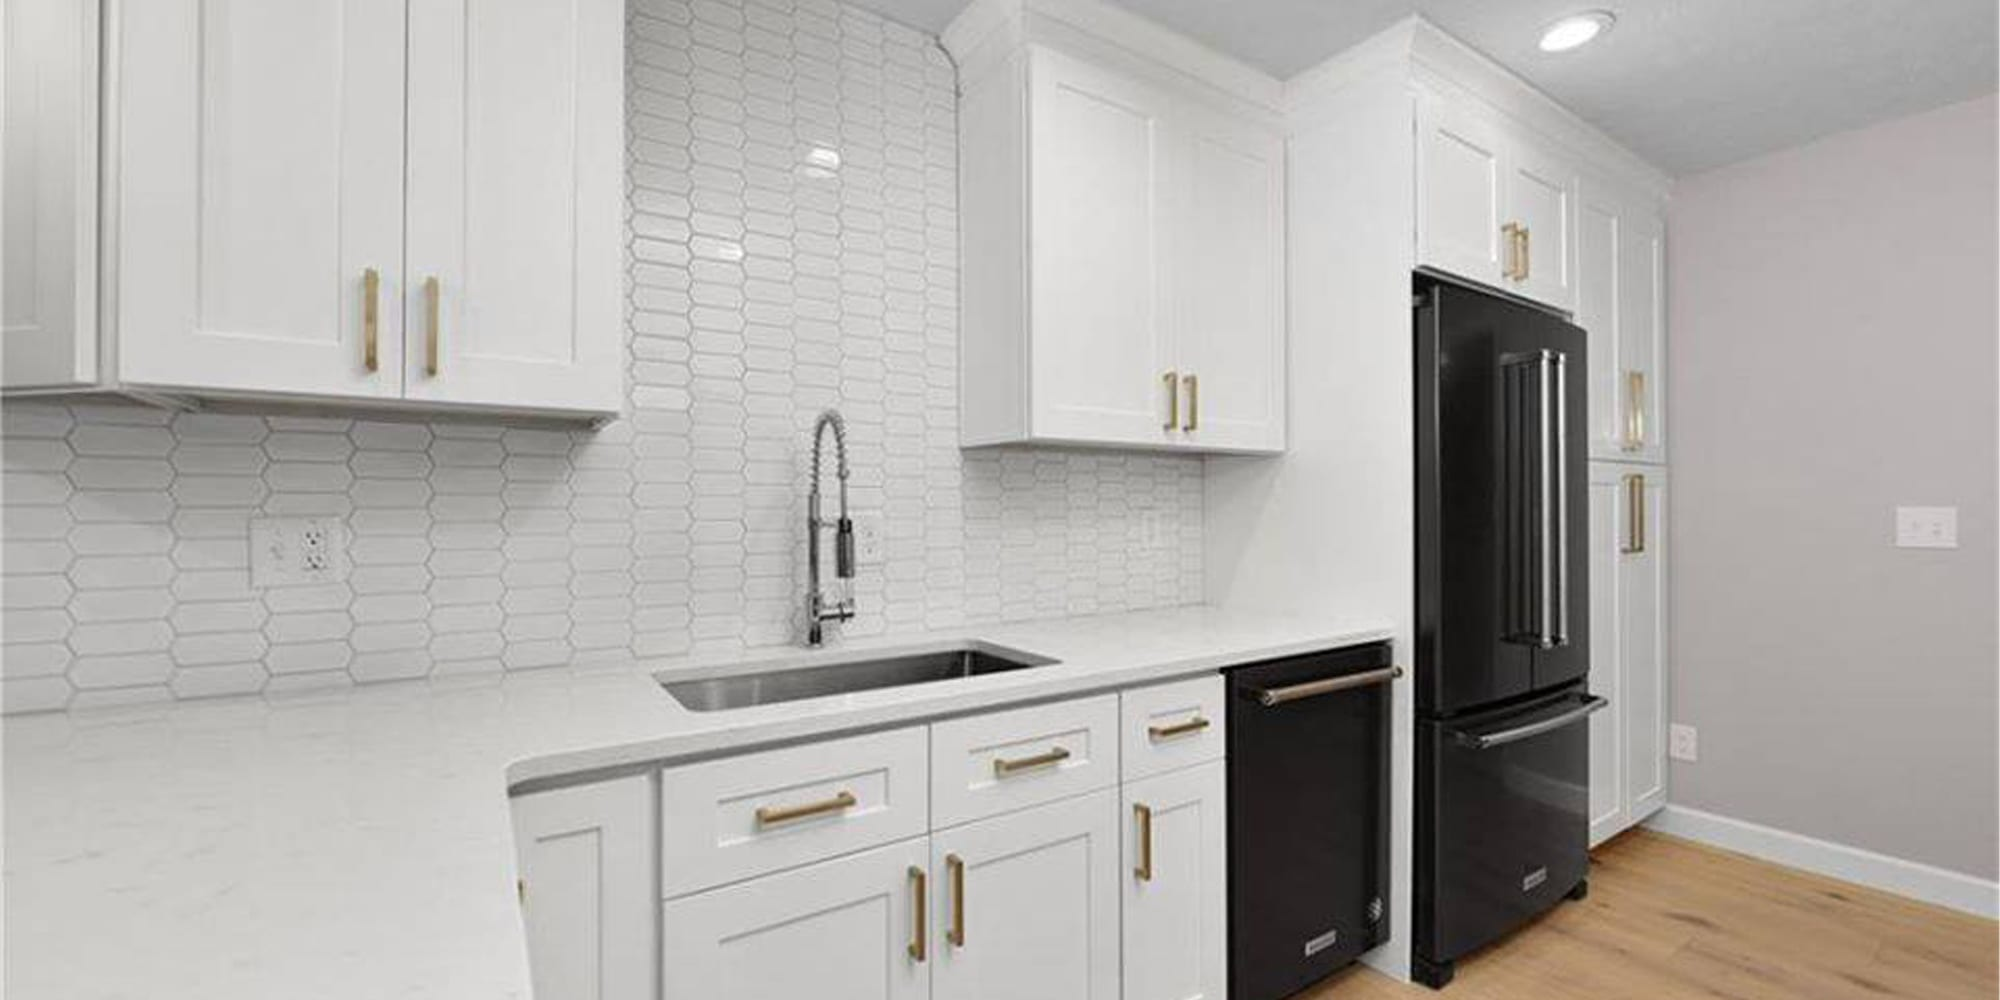 white kitchen with black dishwasher and fridge and silver sink